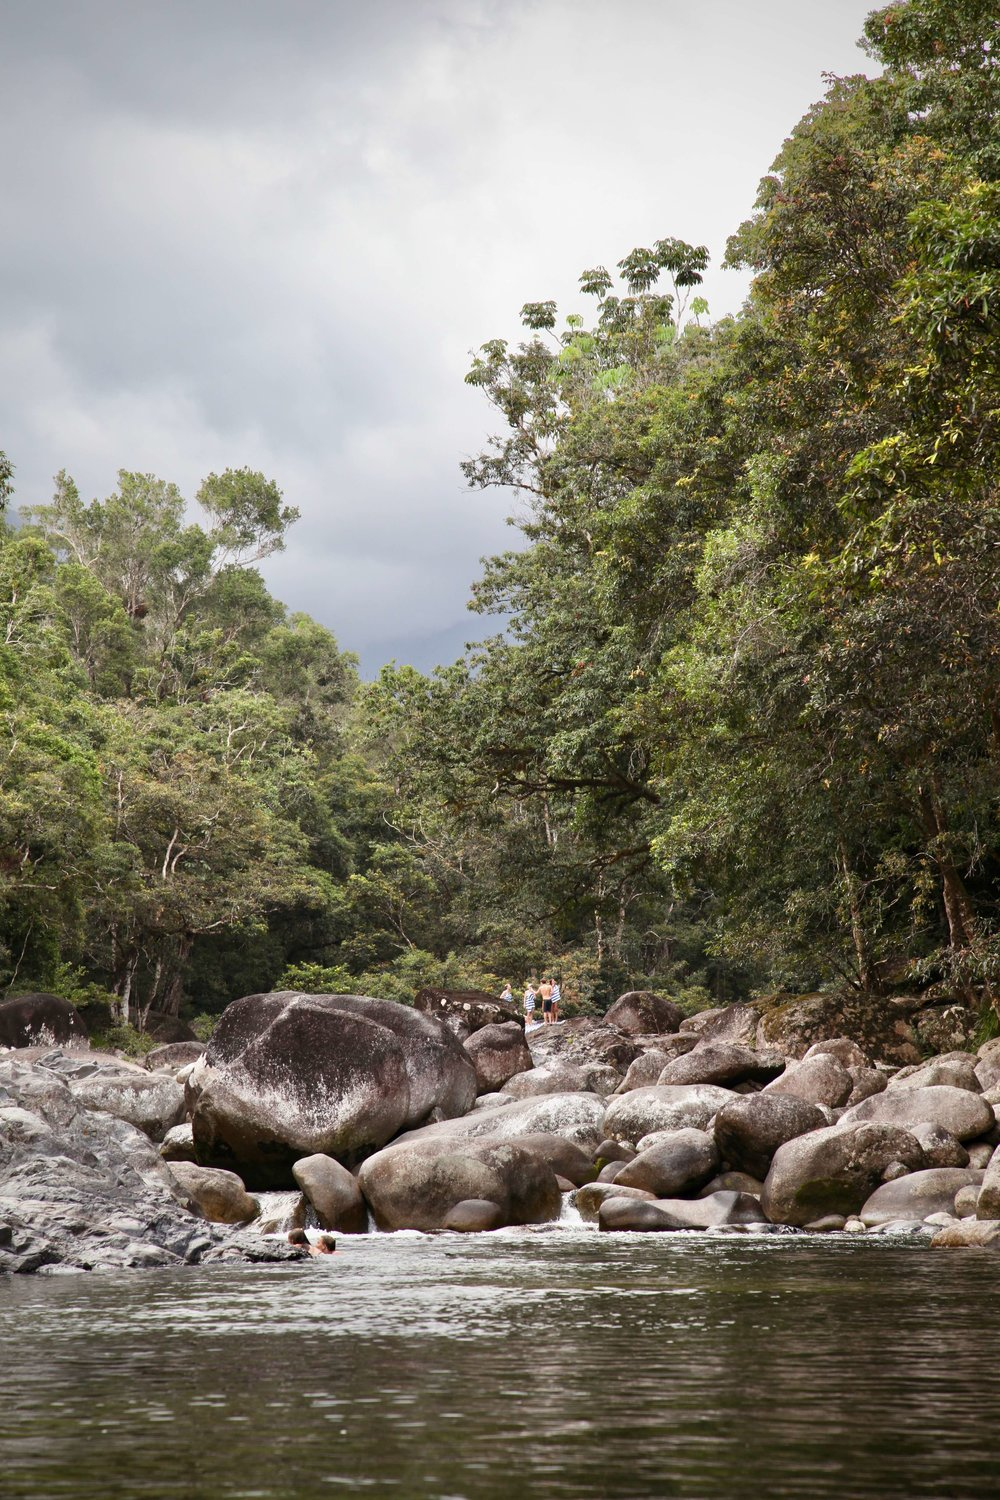 Mossman Gorge is an easy daytrip from Cairns or Port Douglas in far north Queensland.